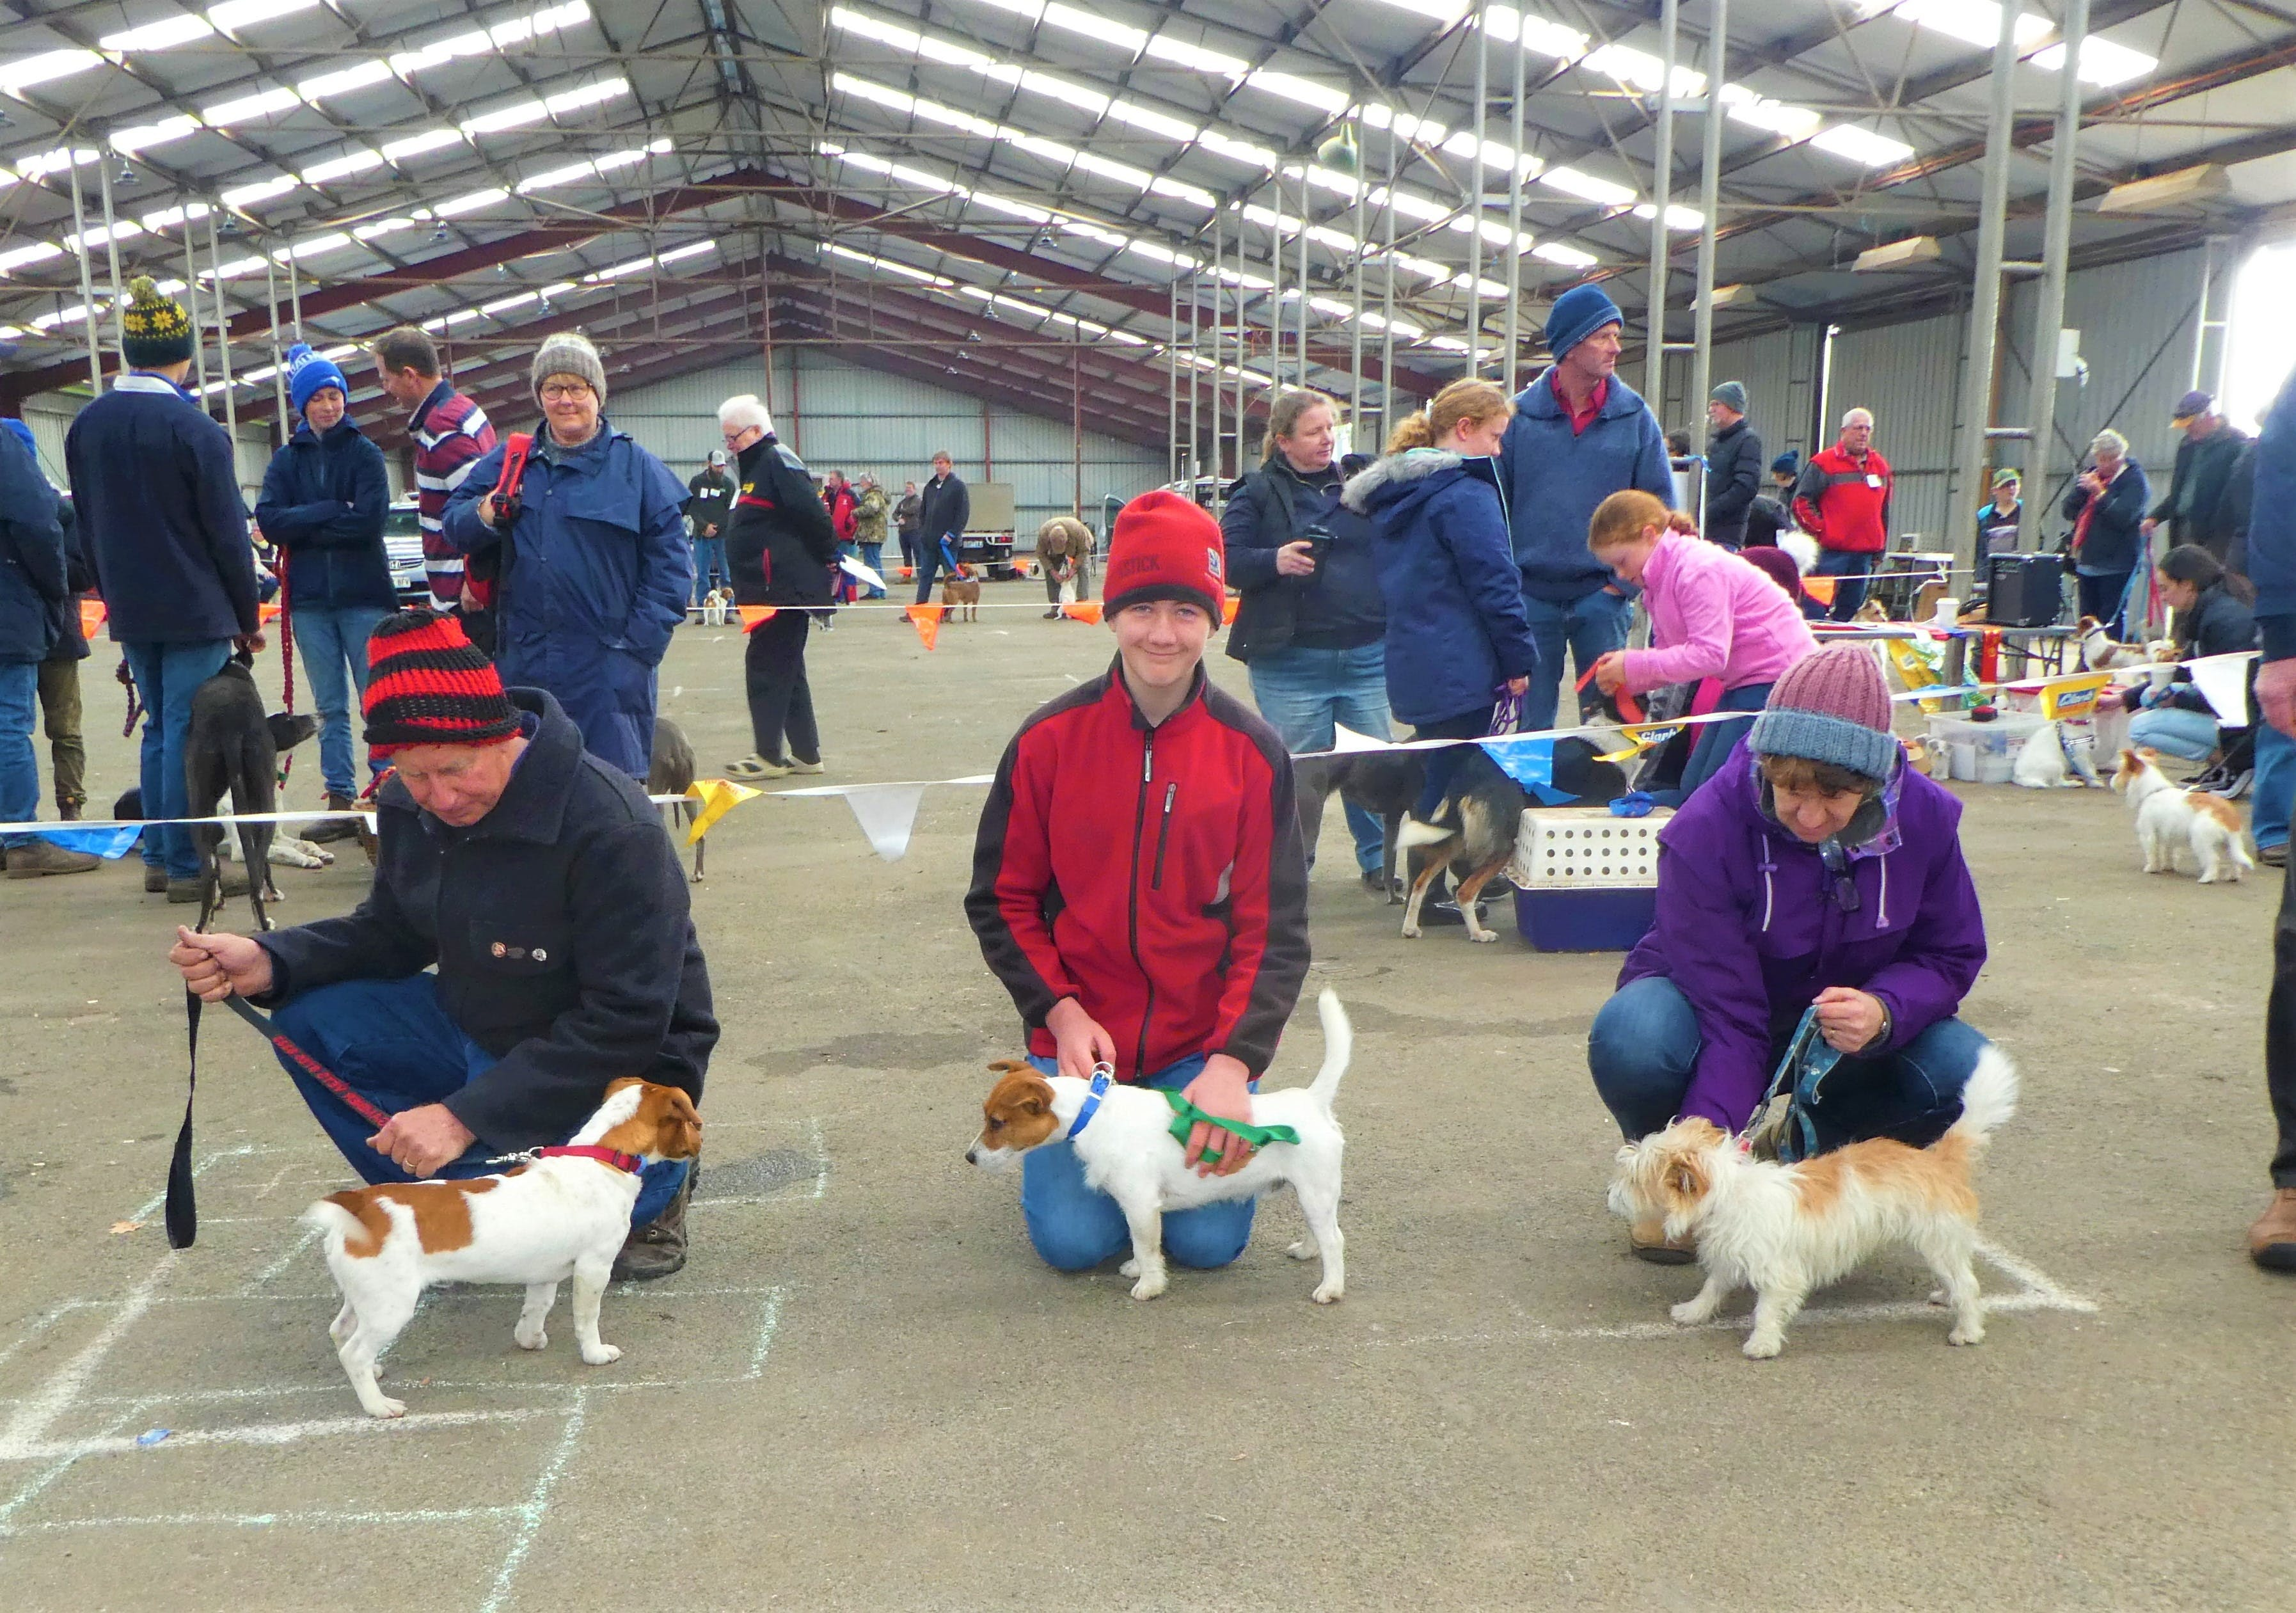 Hamilton Jack Russell Terrier and Hunting Dog Show - eAccommodation